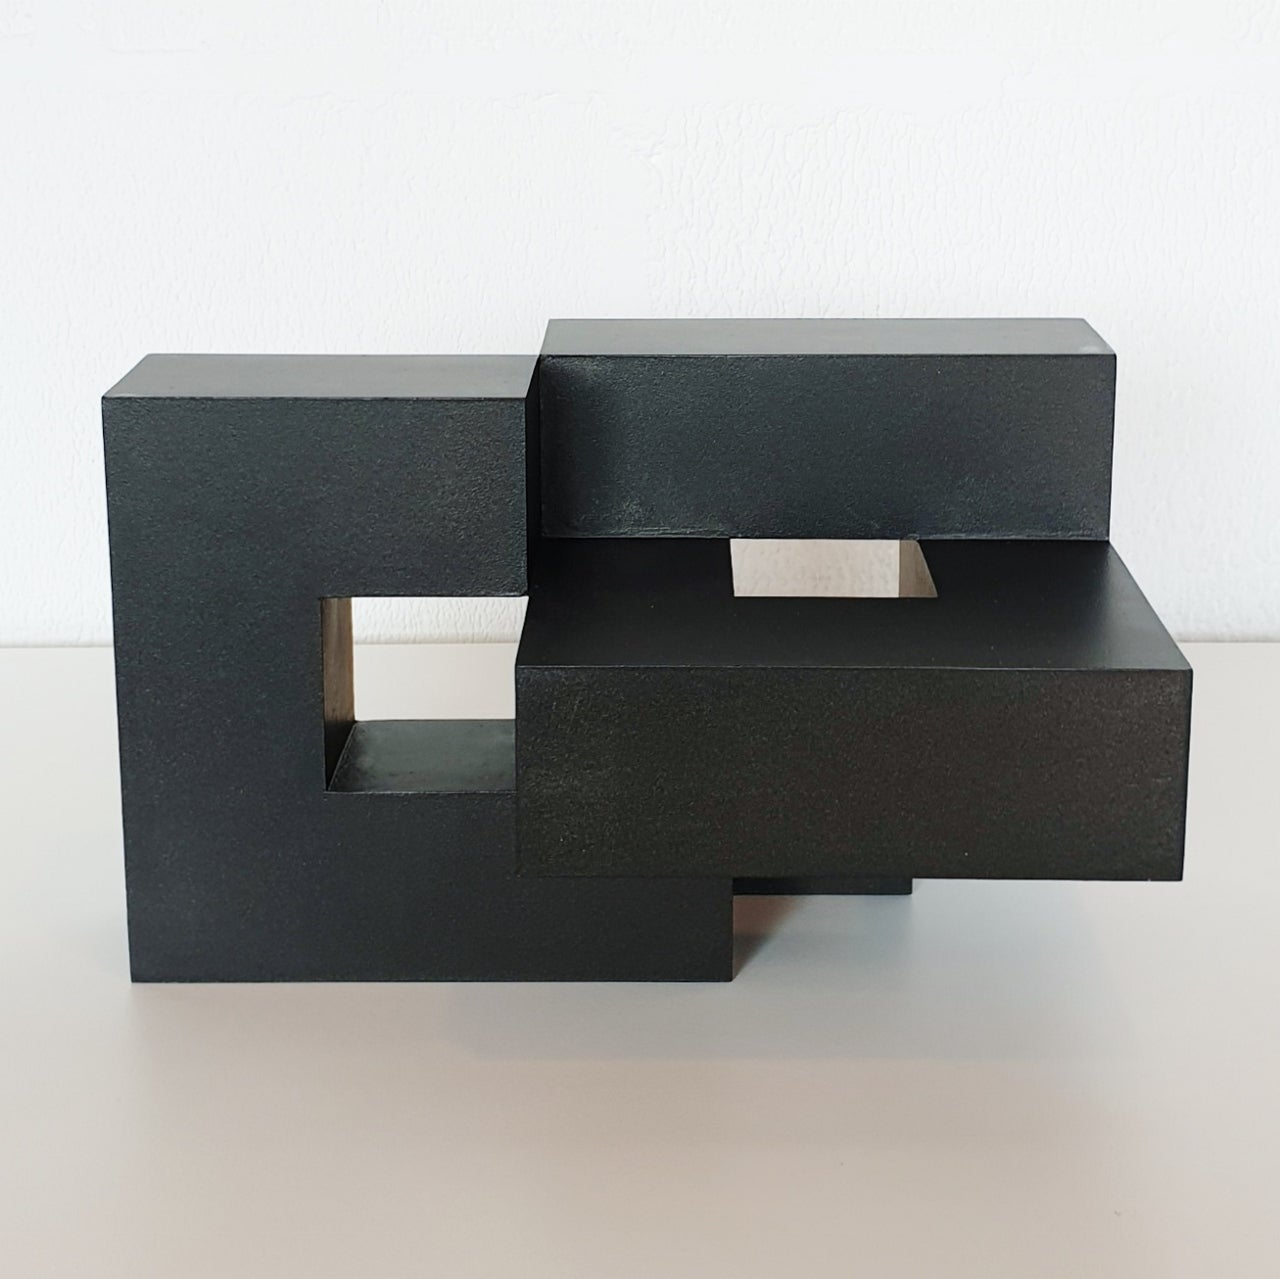 Equilibre architectural I no. 1/15 - contemporary modern abstract wall sculpture